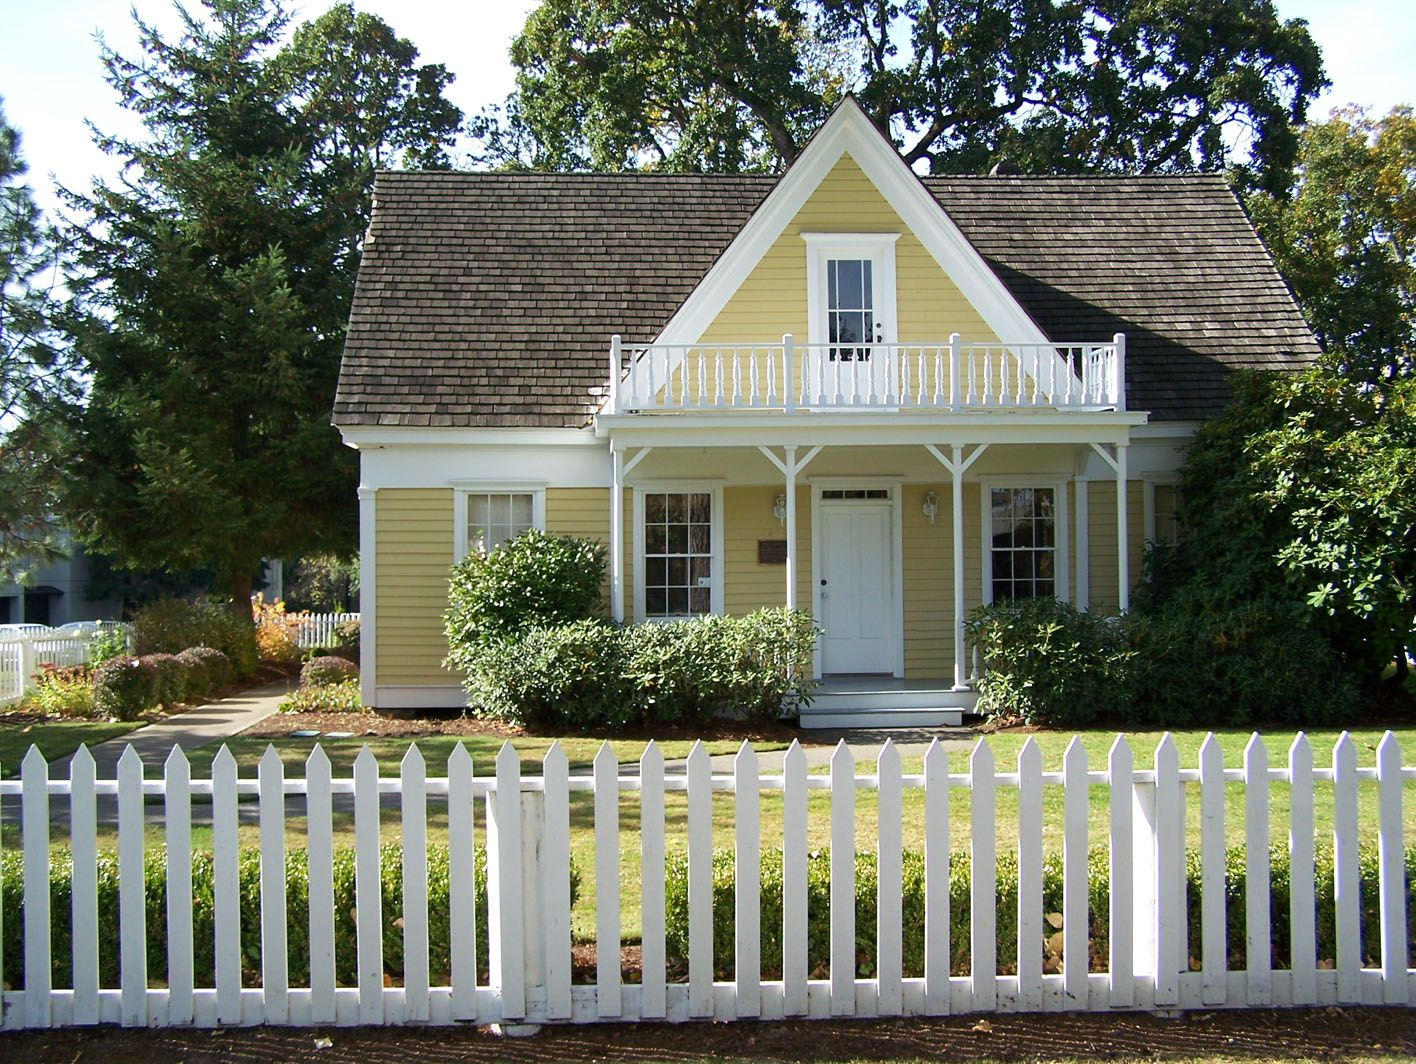 Living The American Dream With A White Picket Fence Houses